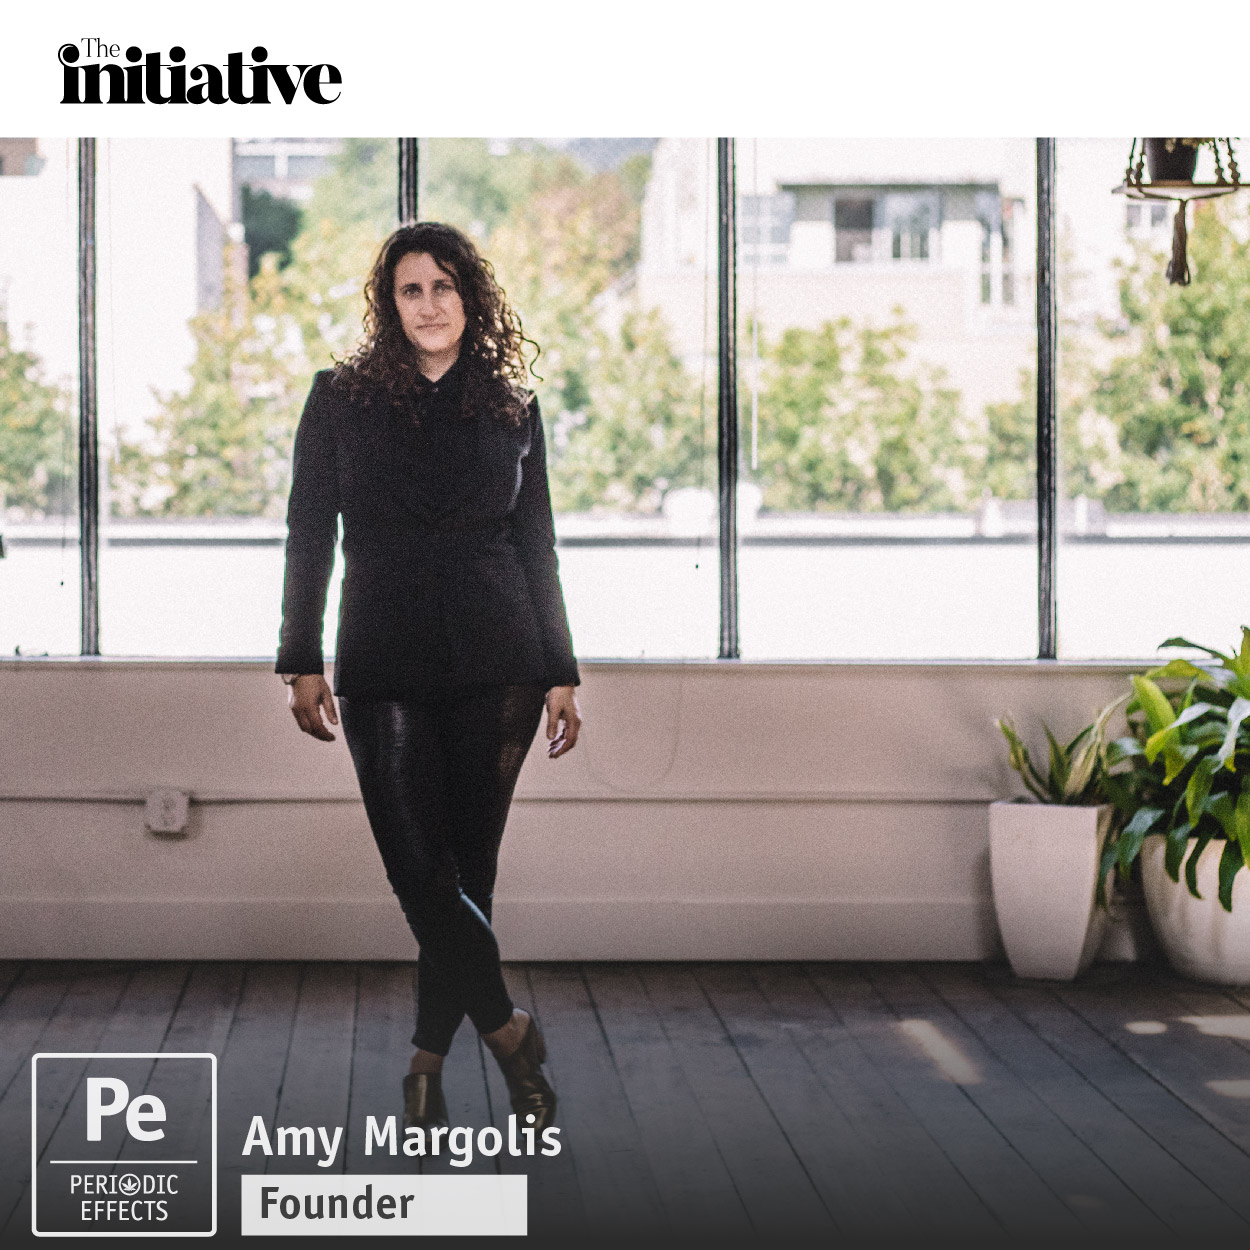 Amy Margolis, a cannabis lawyer who founded The Initiative, a business startup accelerator for women founded cannabis companies